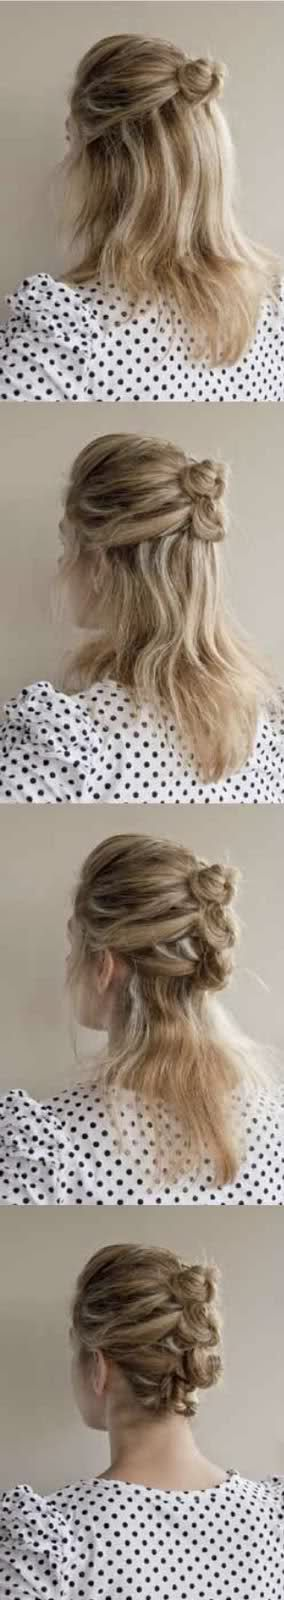 Work hairstyle for curls next day?